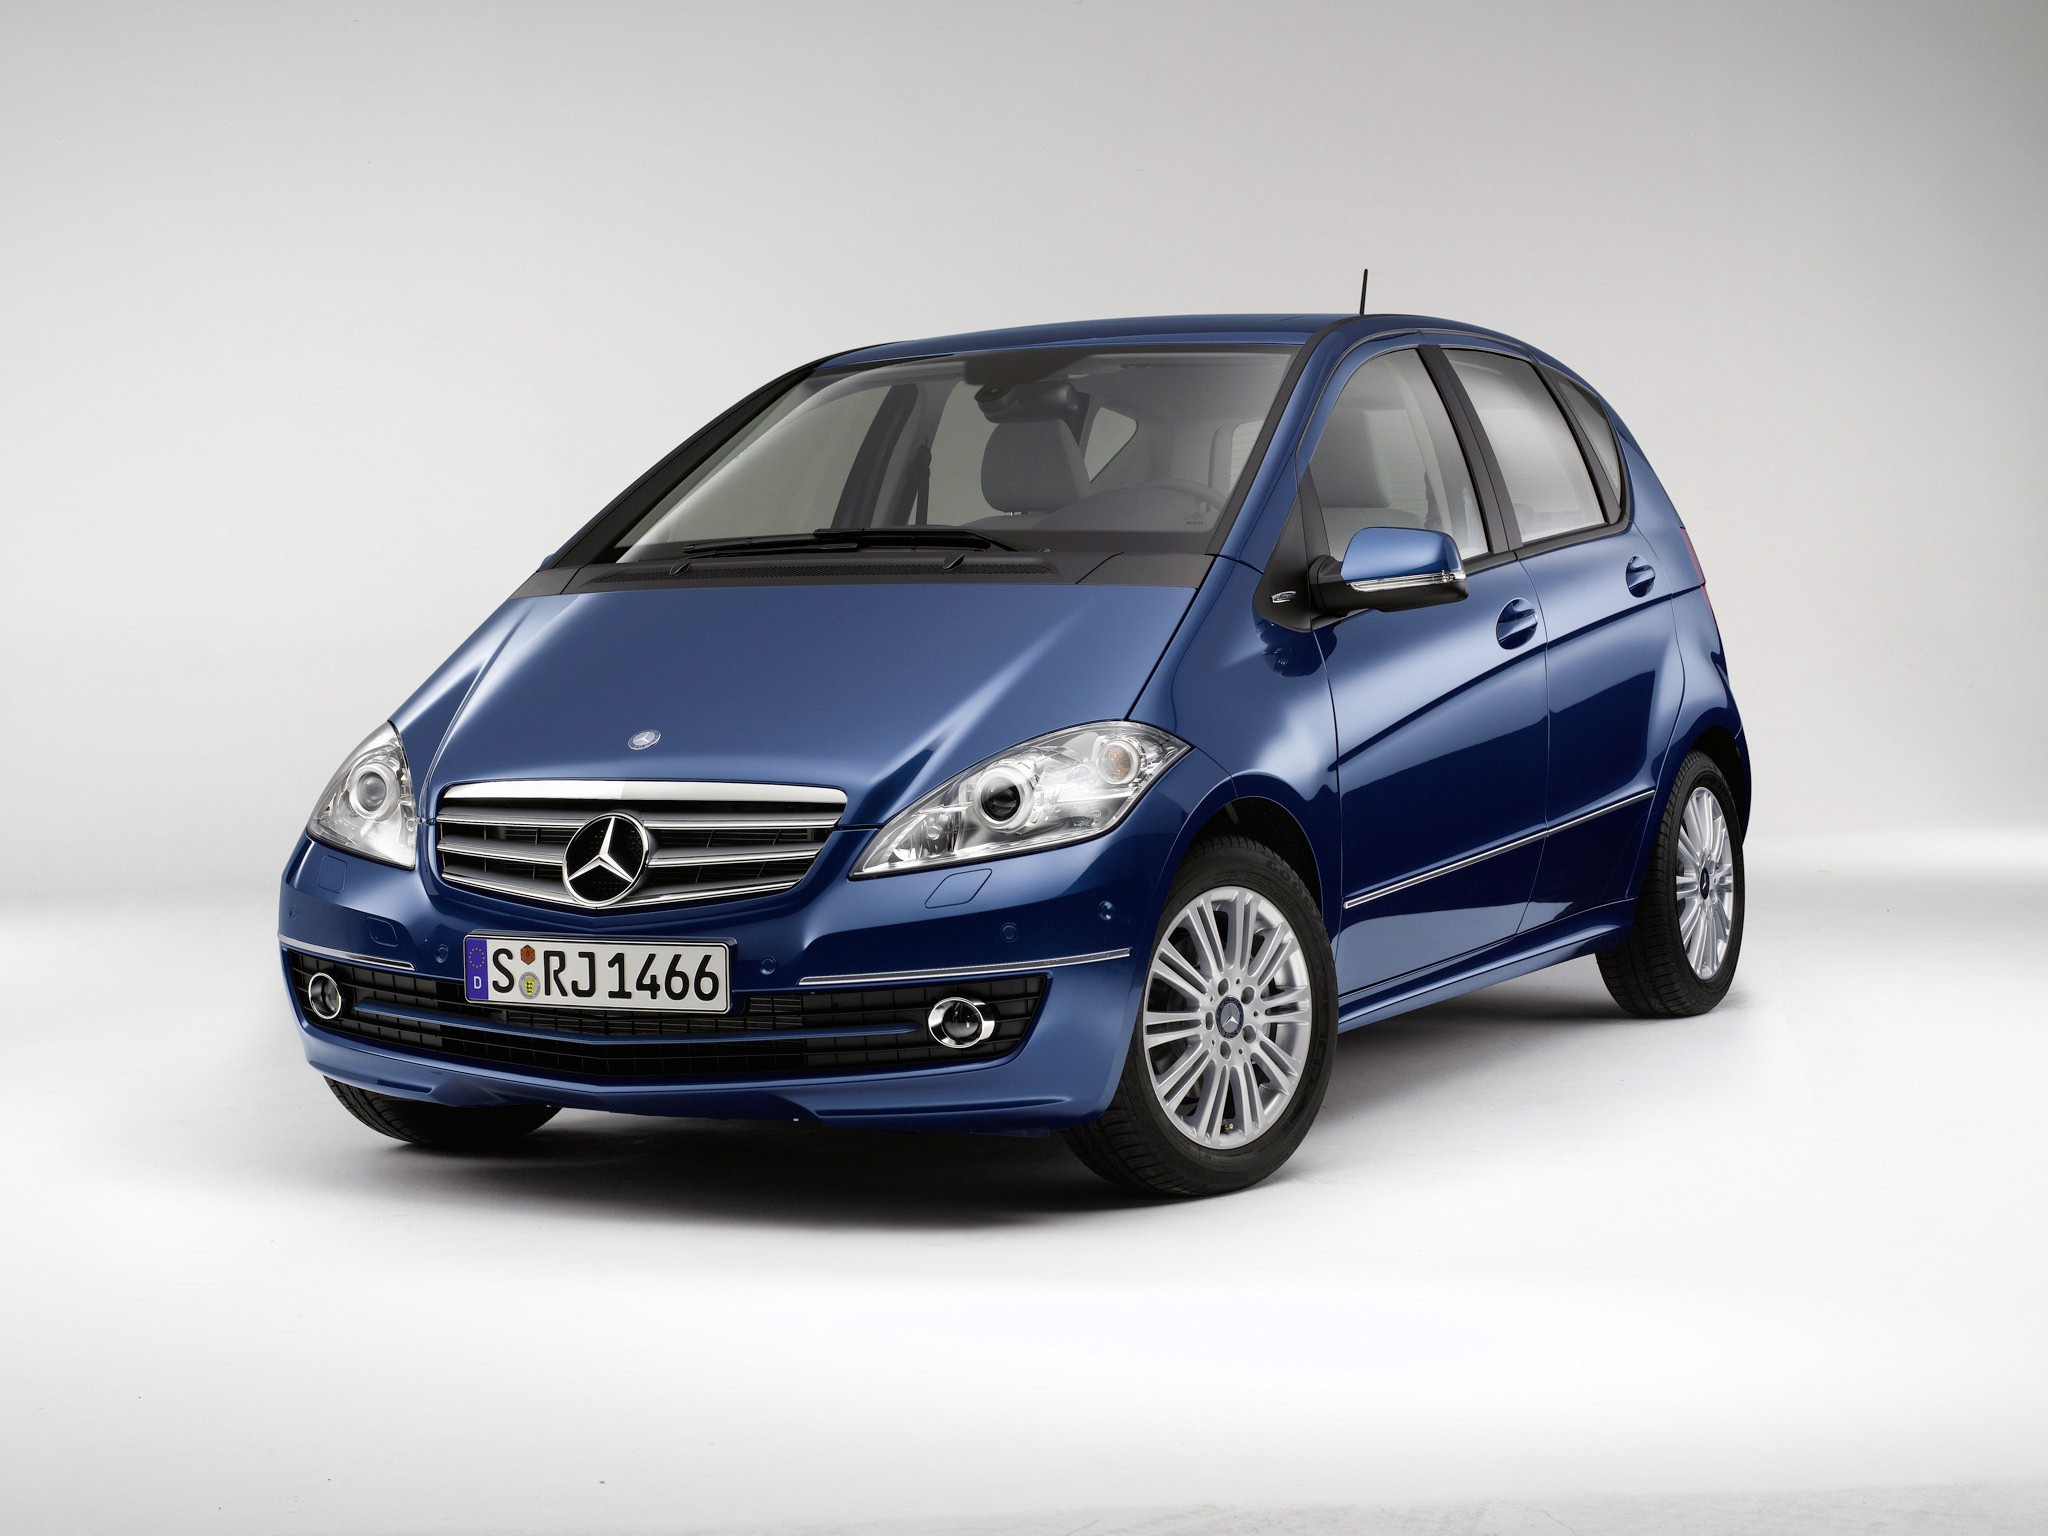 mercedes benz a klasse w169 specs 2008 2009 2010 2011 2012 autoevolution. Black Bedroom Furniture Sets. Home Design Ideas